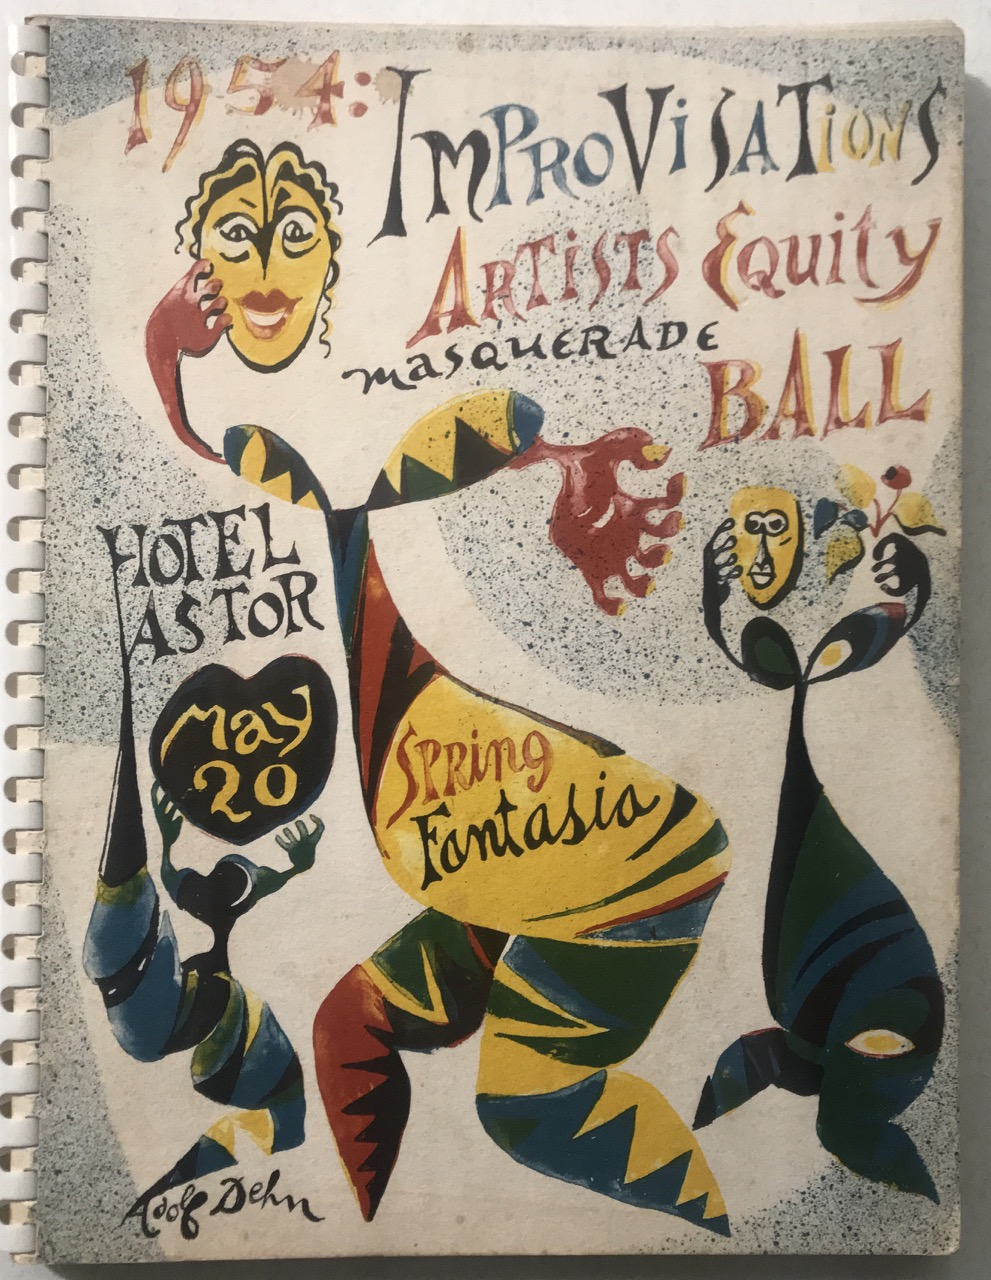 Image for Improvisations 1954 / Artists Equity Masquerade Ball